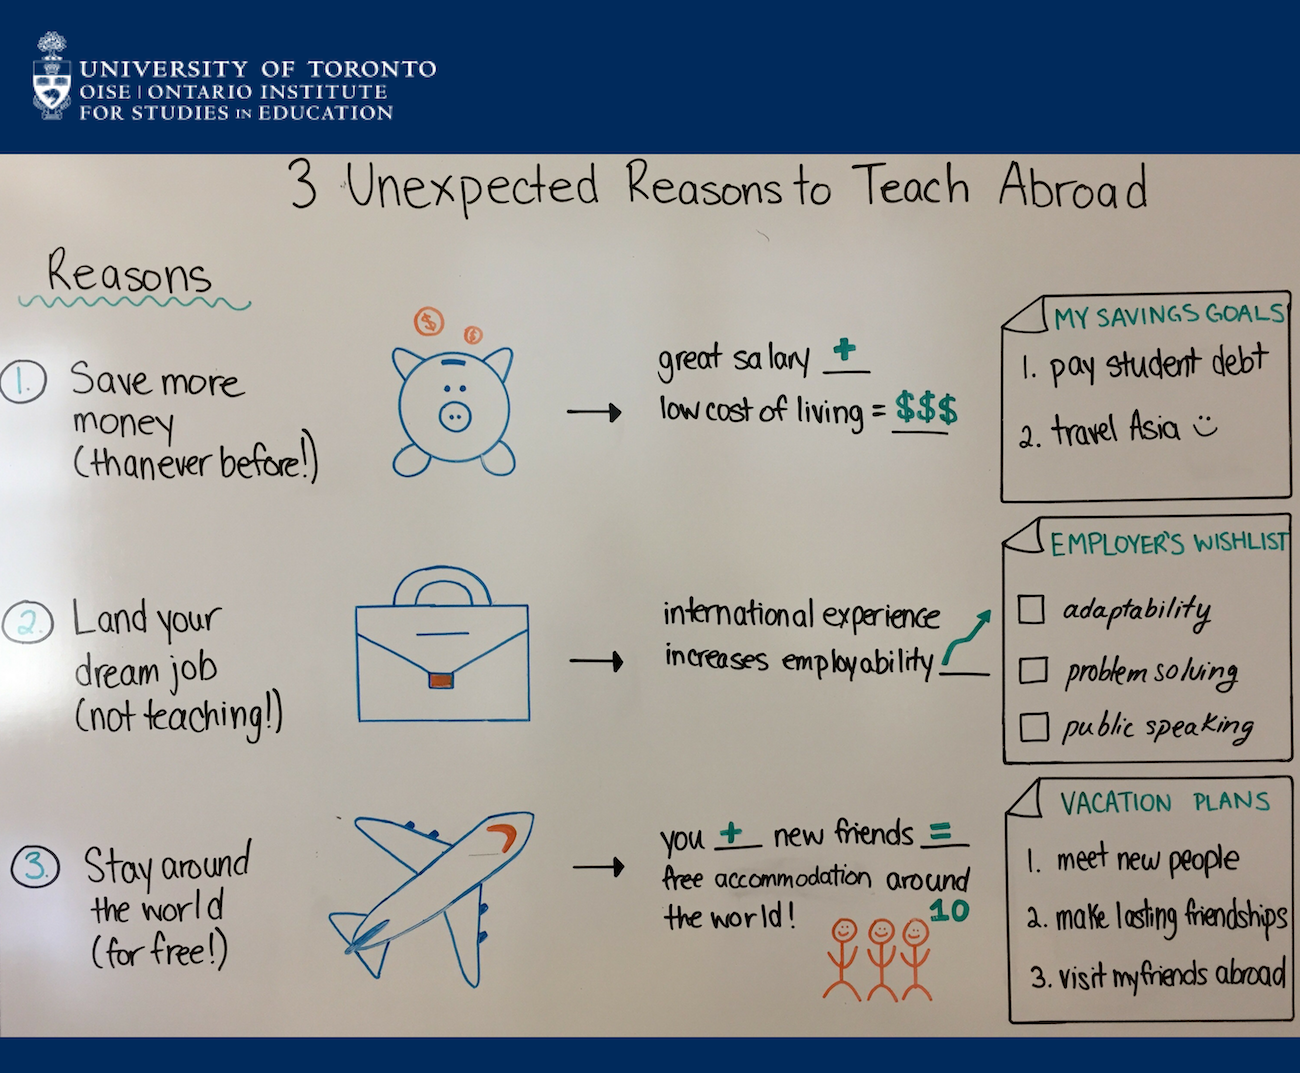 3 unexpected reasons to teach abroad